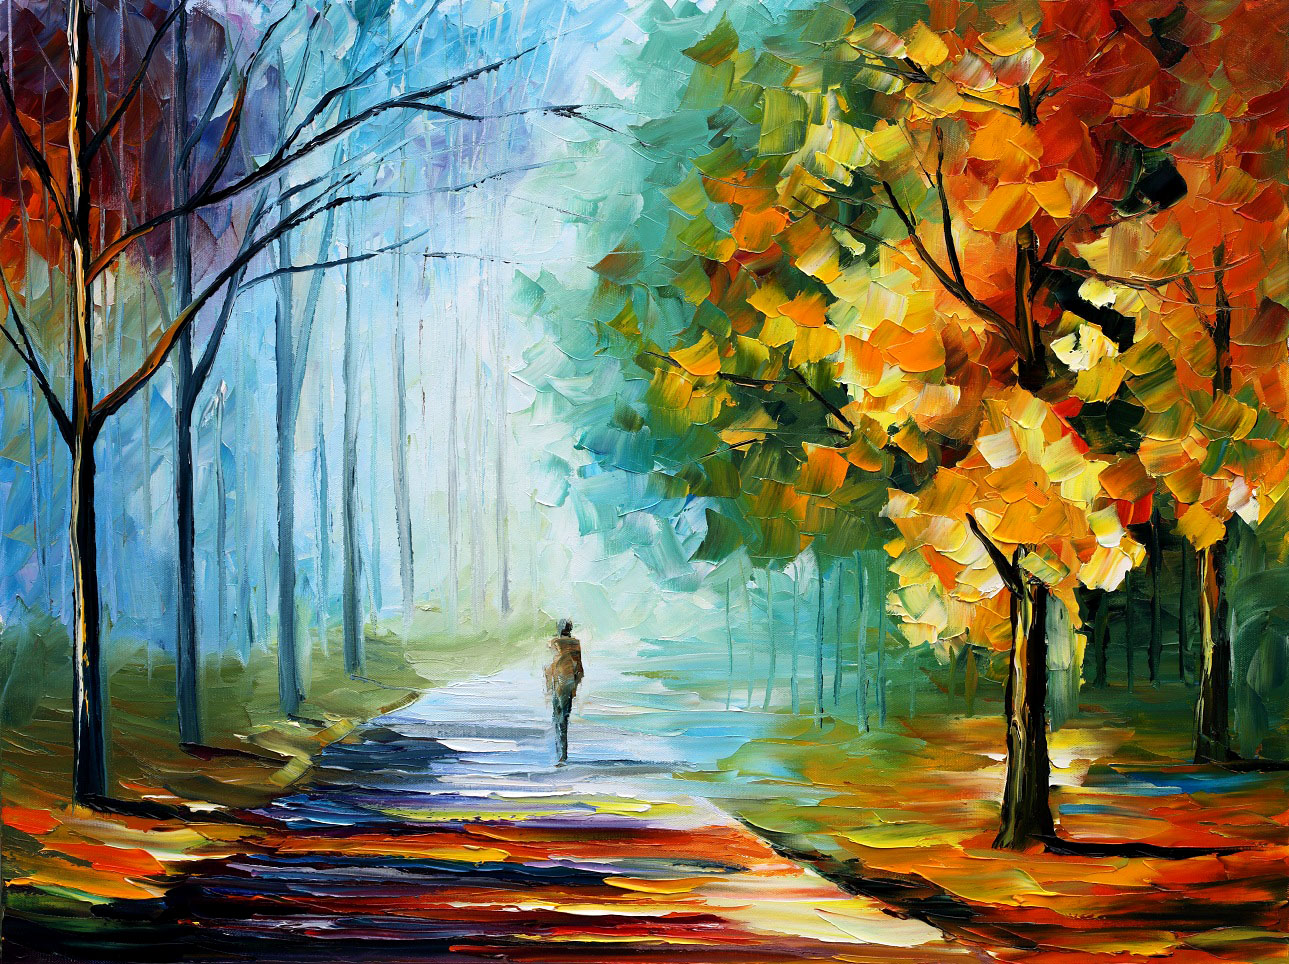 Painting of a lonely person walking alone along a path with colorful trees around